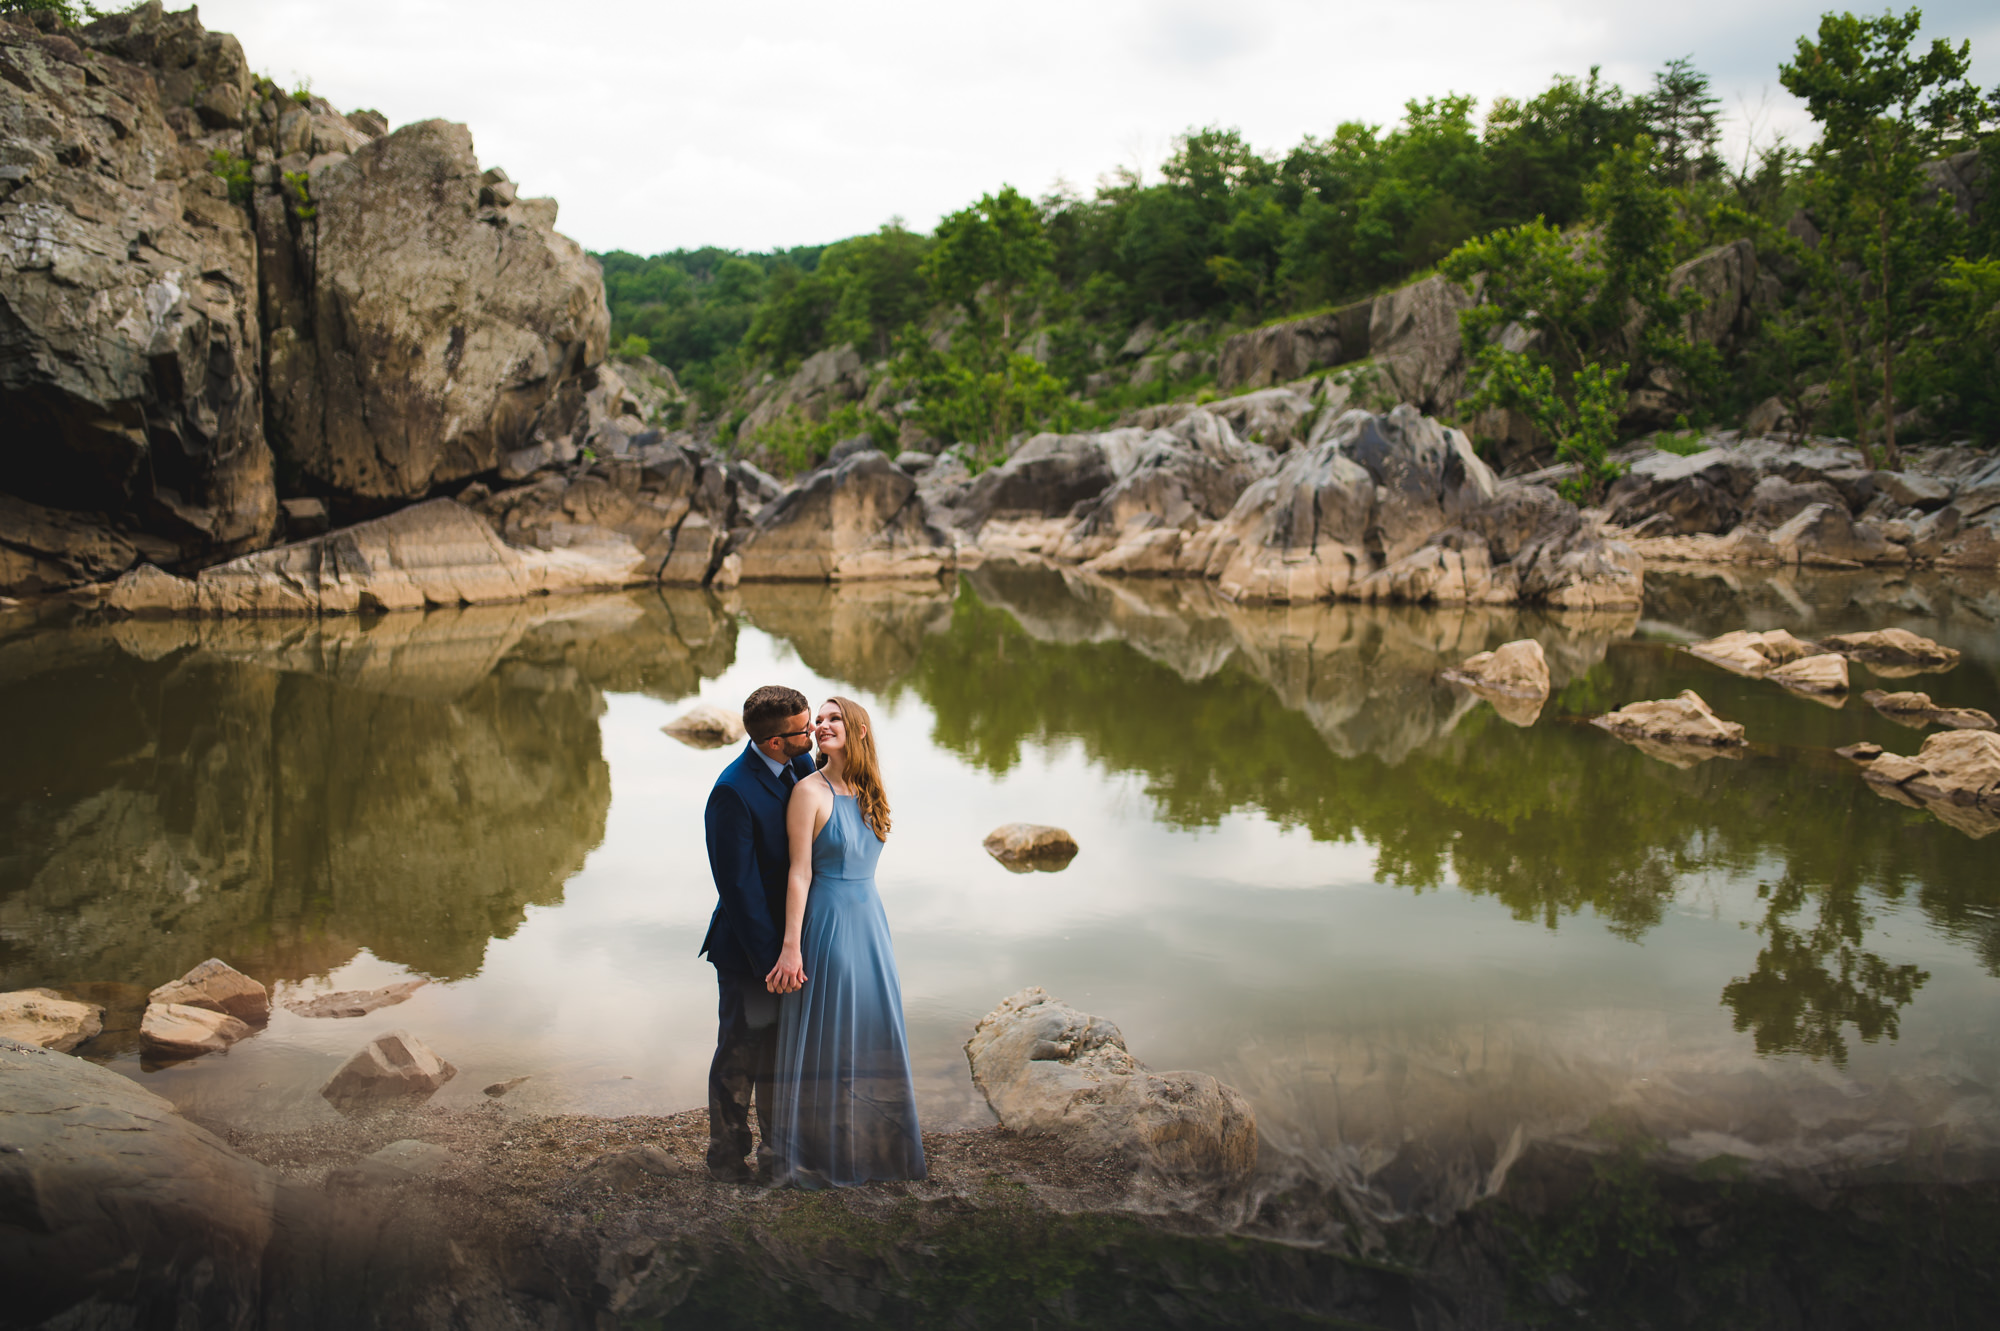 Great-Falls-Park-elegant-engagement-picture-by-Gabriele-Stonyte-Photography